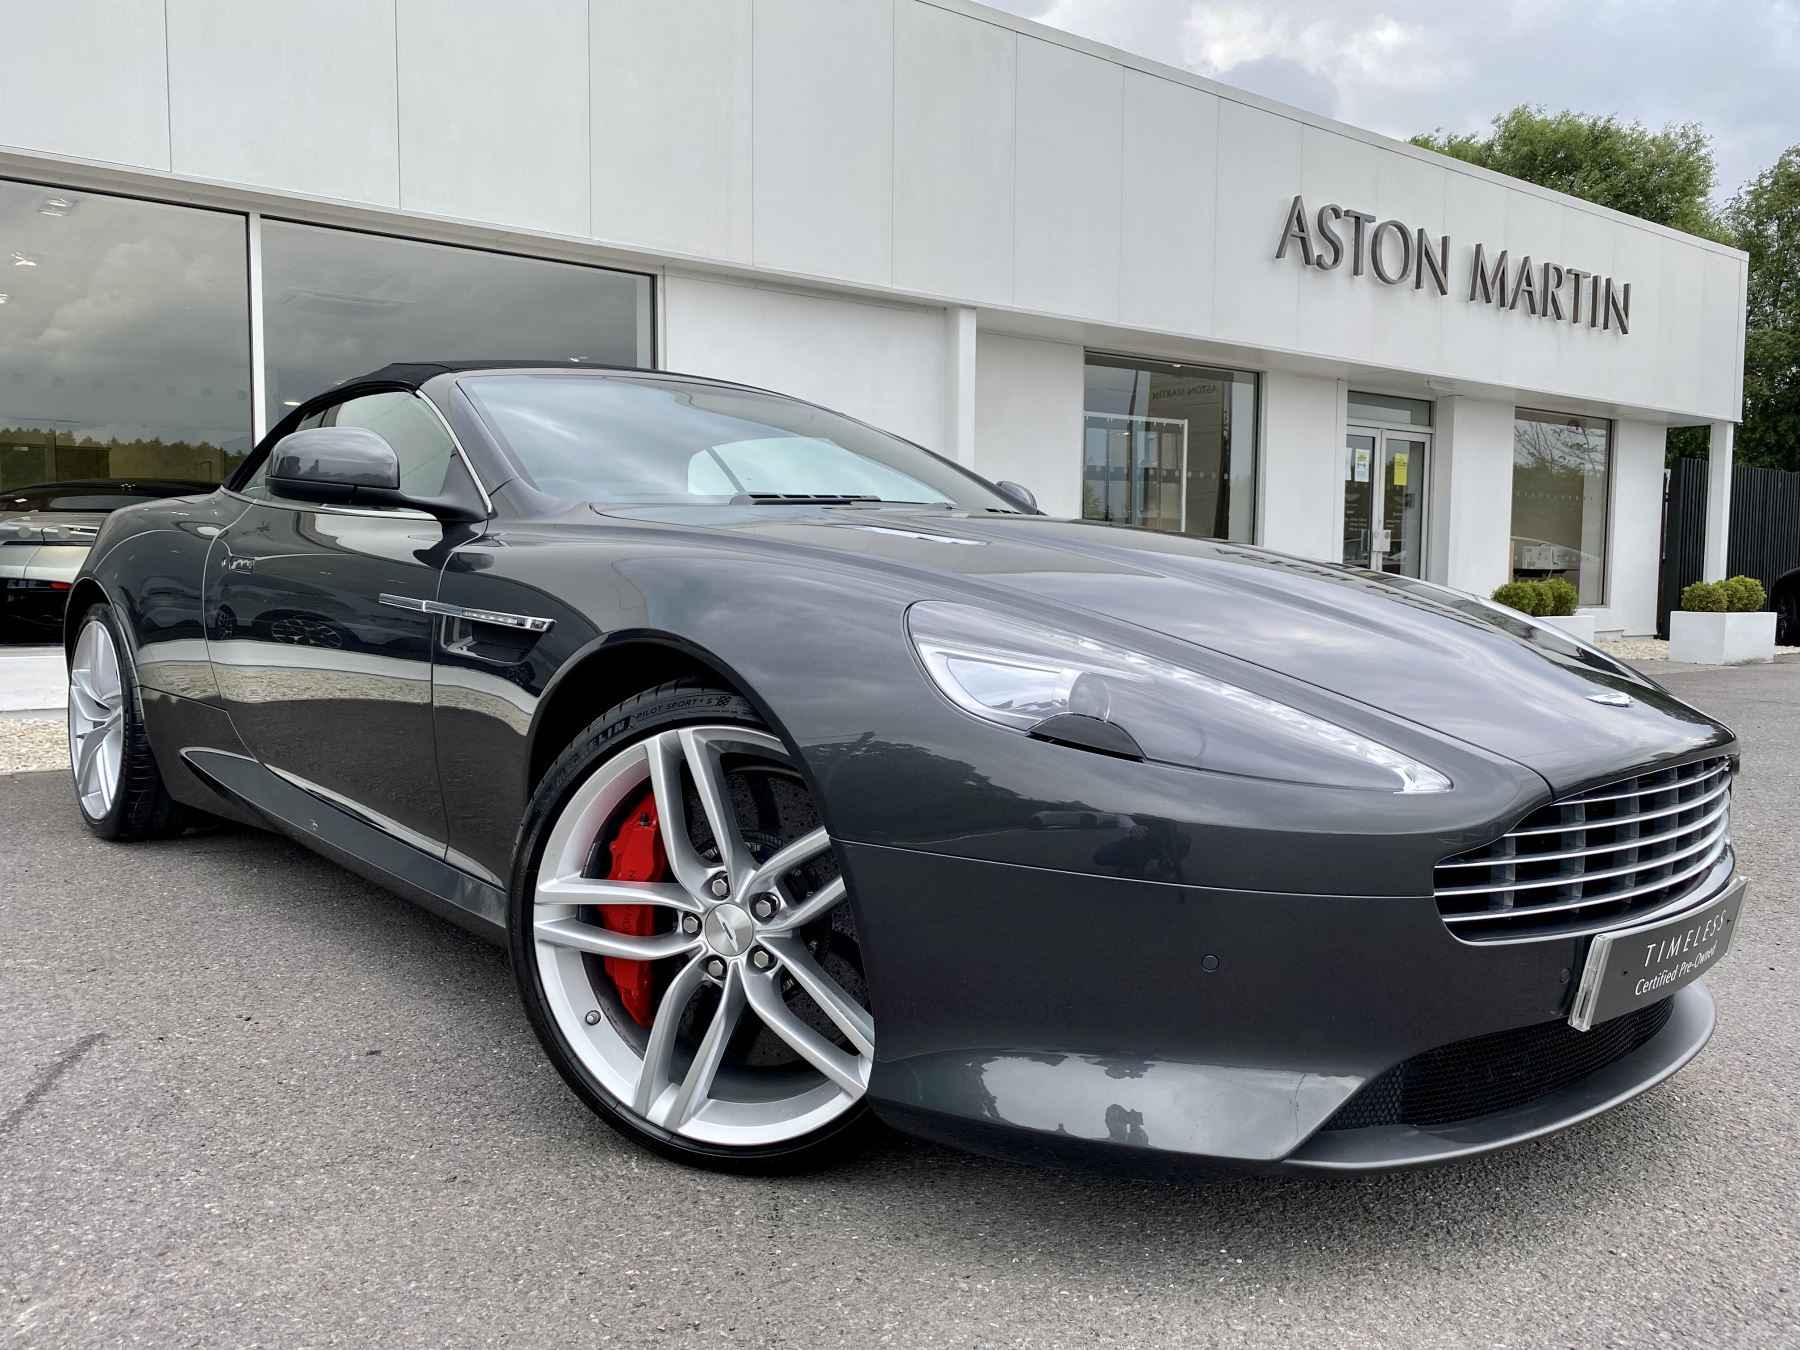 Aston Martin Virage V12 2dr Volante Touchtronic, Very Rare, Meteorite Silver and Obsidian Black Leather Upholstery. 5.9 Automatic Convertible